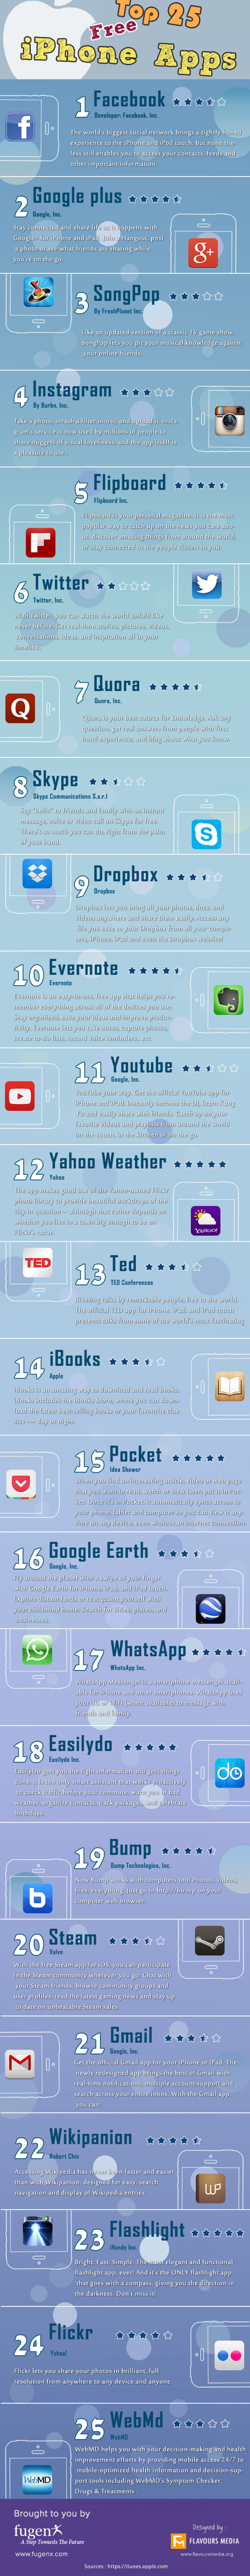 Top 25 Free iPhone Apps | Infographic from FuGenX  Infographic